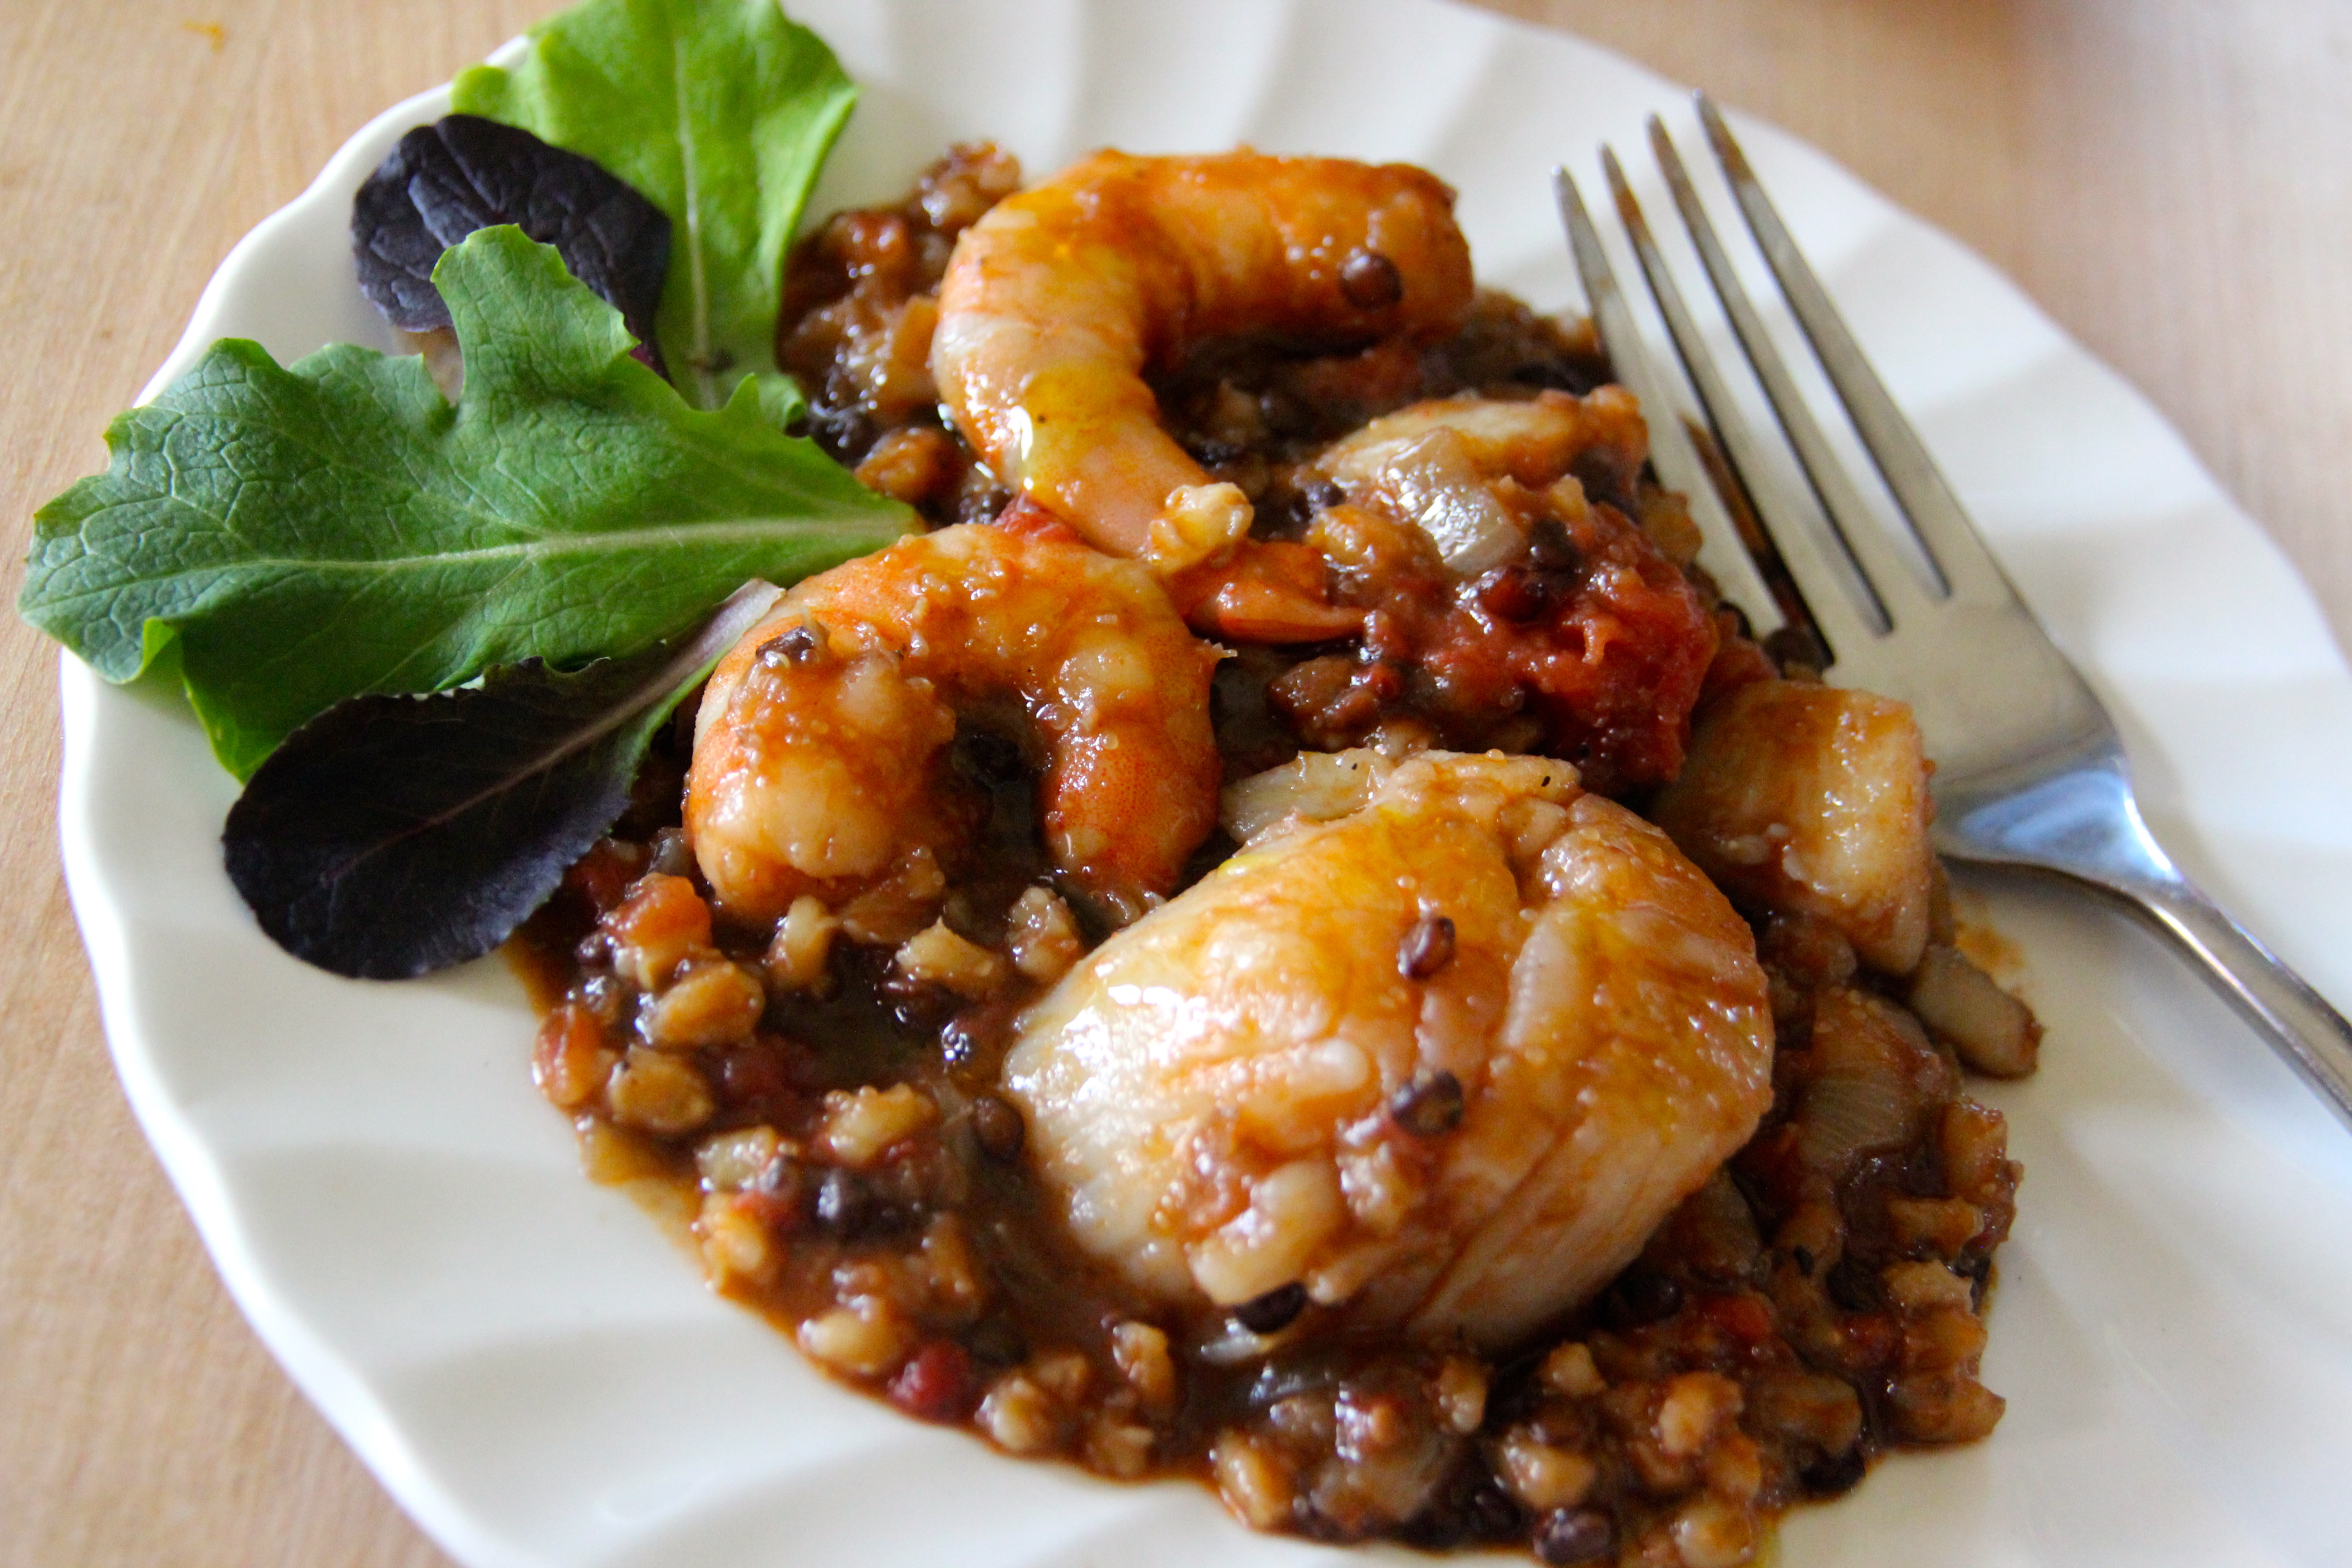 Scallop, Shrimp, whole grains, tomato sauce, French, easy recipe